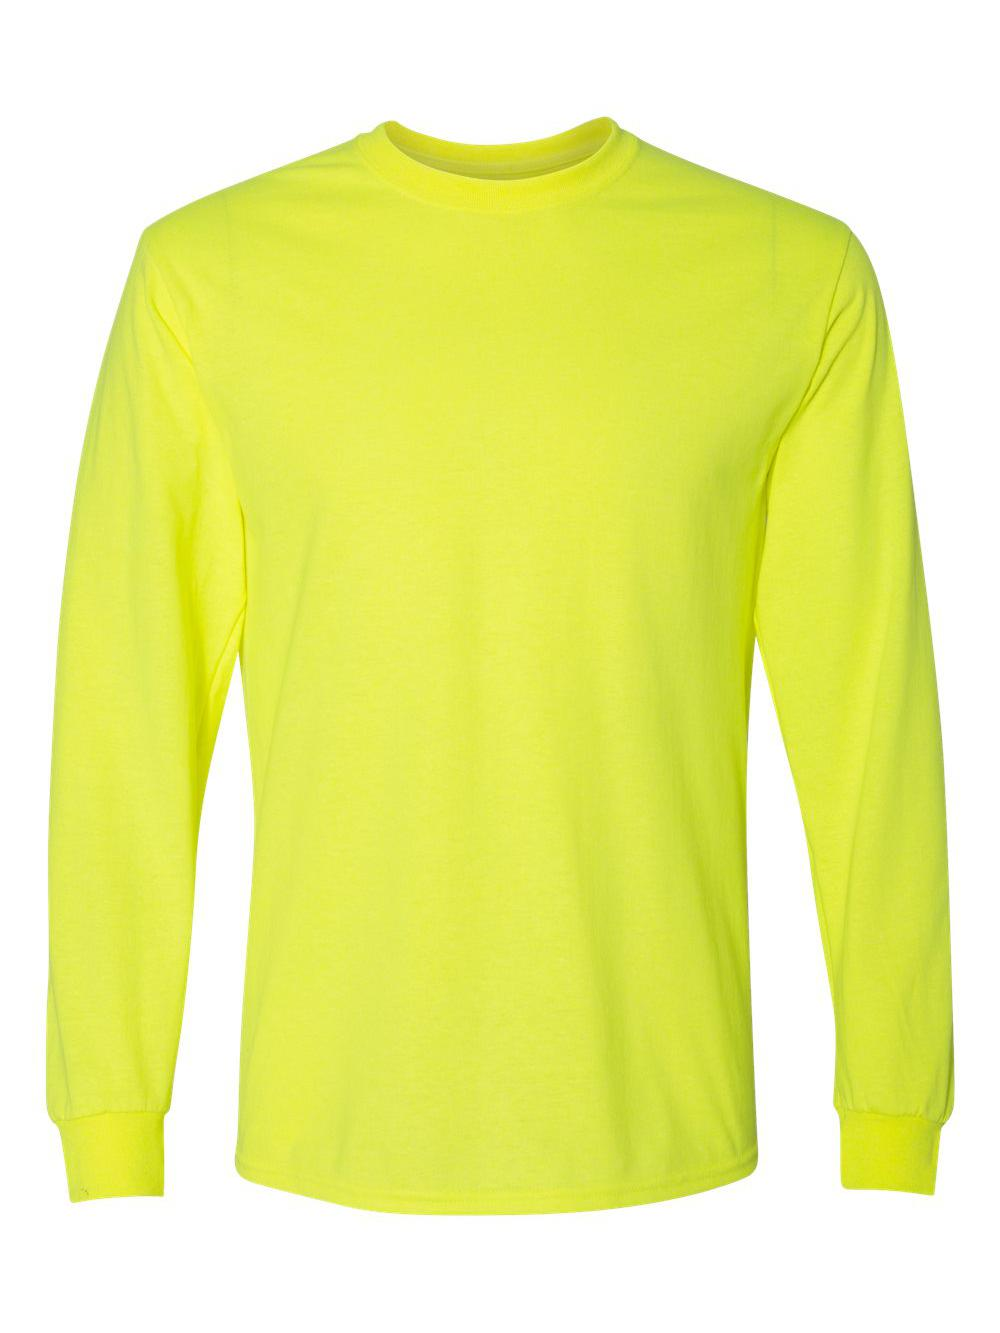 Gildan-DryBlend-50-50-Long-Sleeve-T-Shirt-8400 thumbnail 39